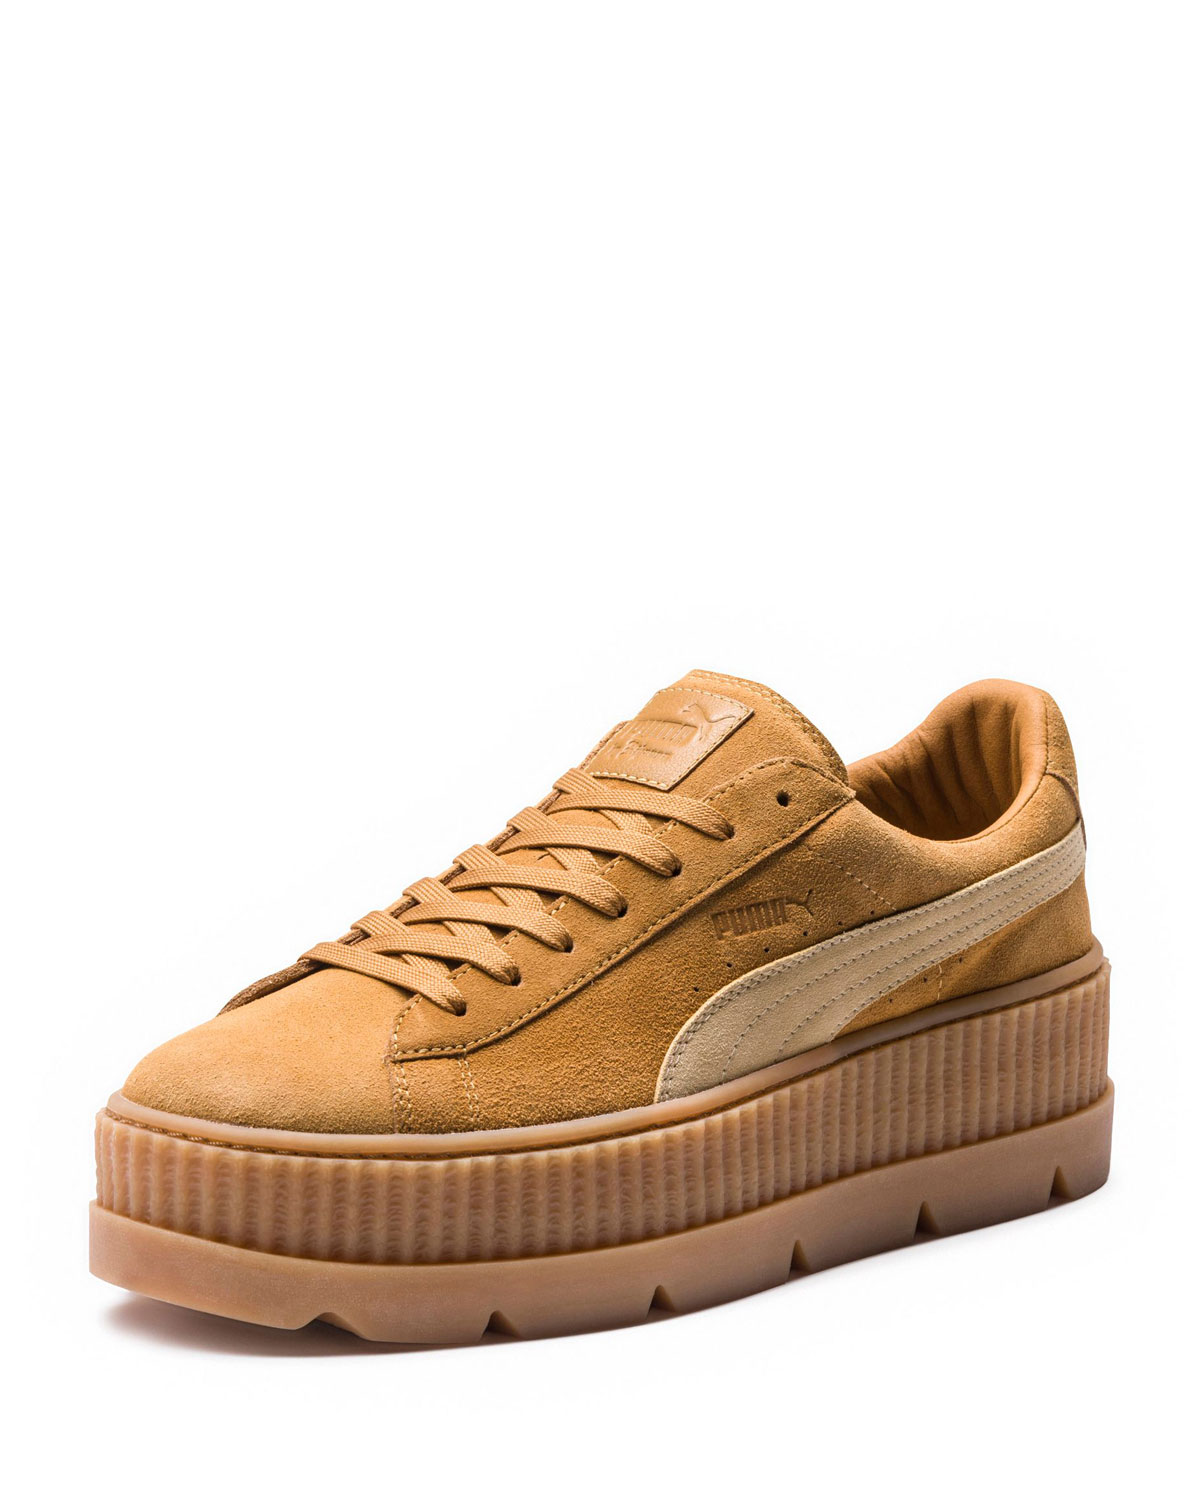 Fenty Puma by Rihanna Low-Top Suede Creeper Sneaker  2fa045a60